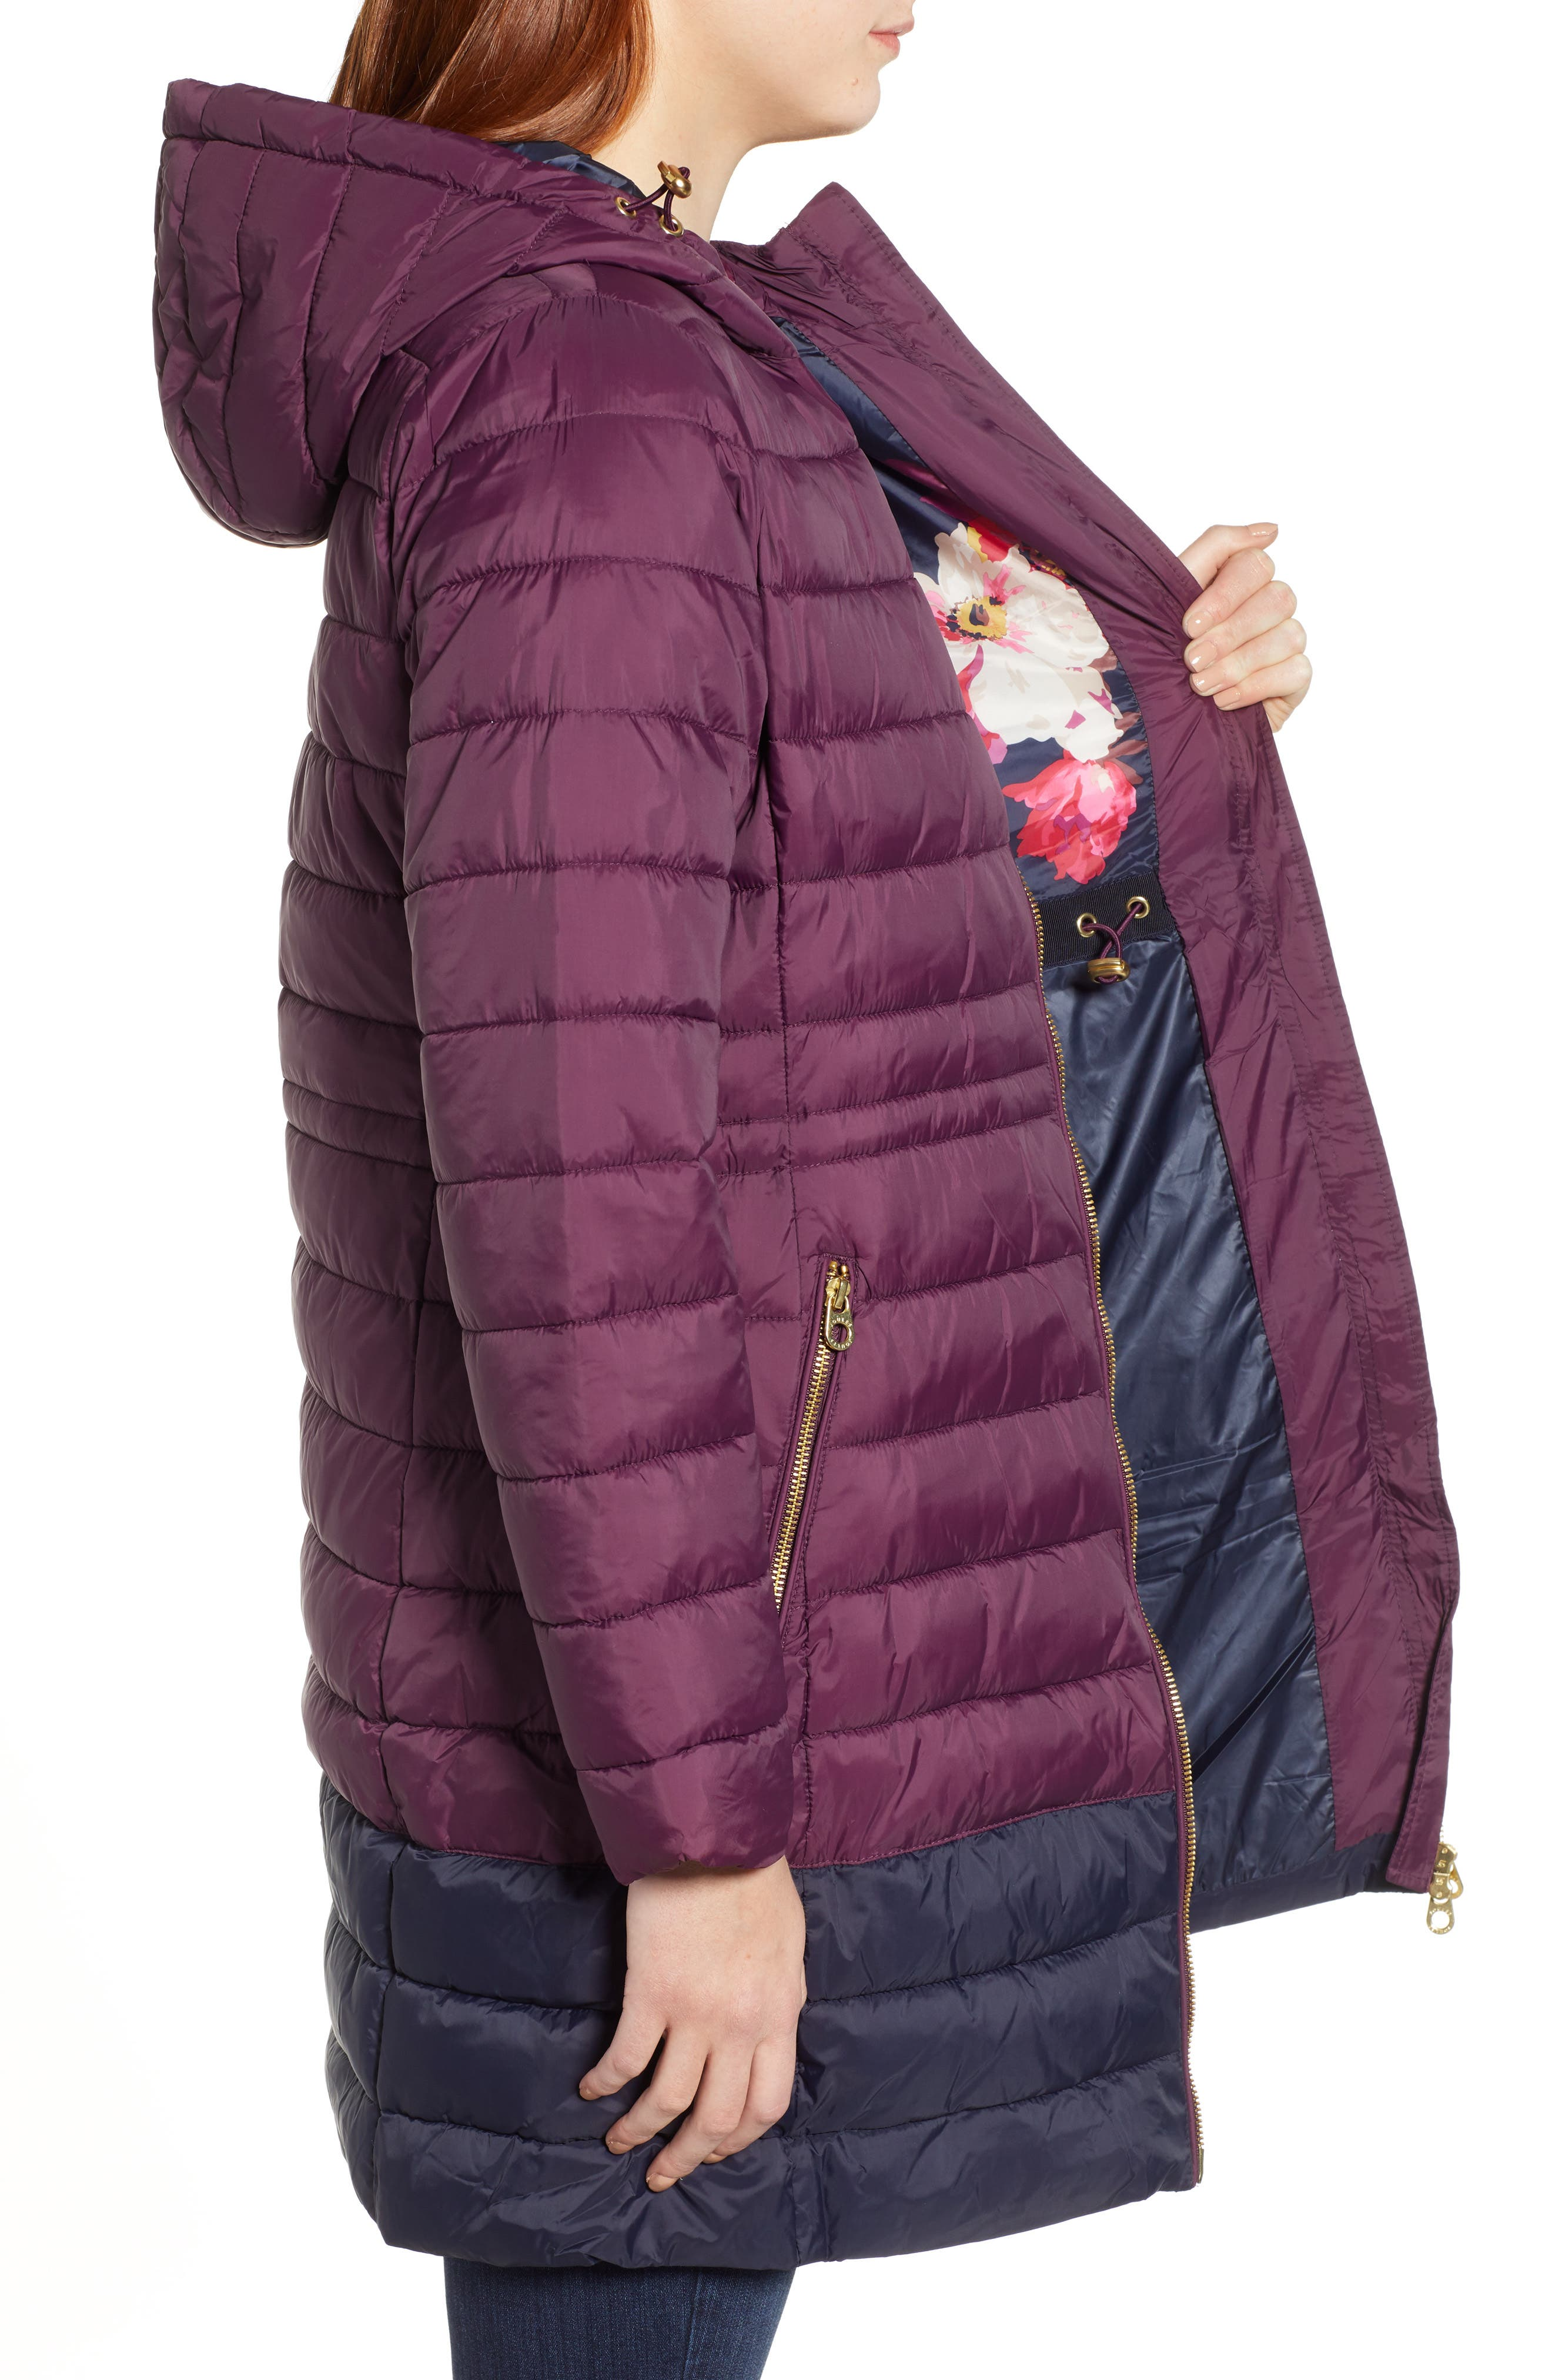 JOULES,                             Heathcote Two-Tone Puffer Jacket,                             Alternate thumbnail 4, color,                             BURGUNDY